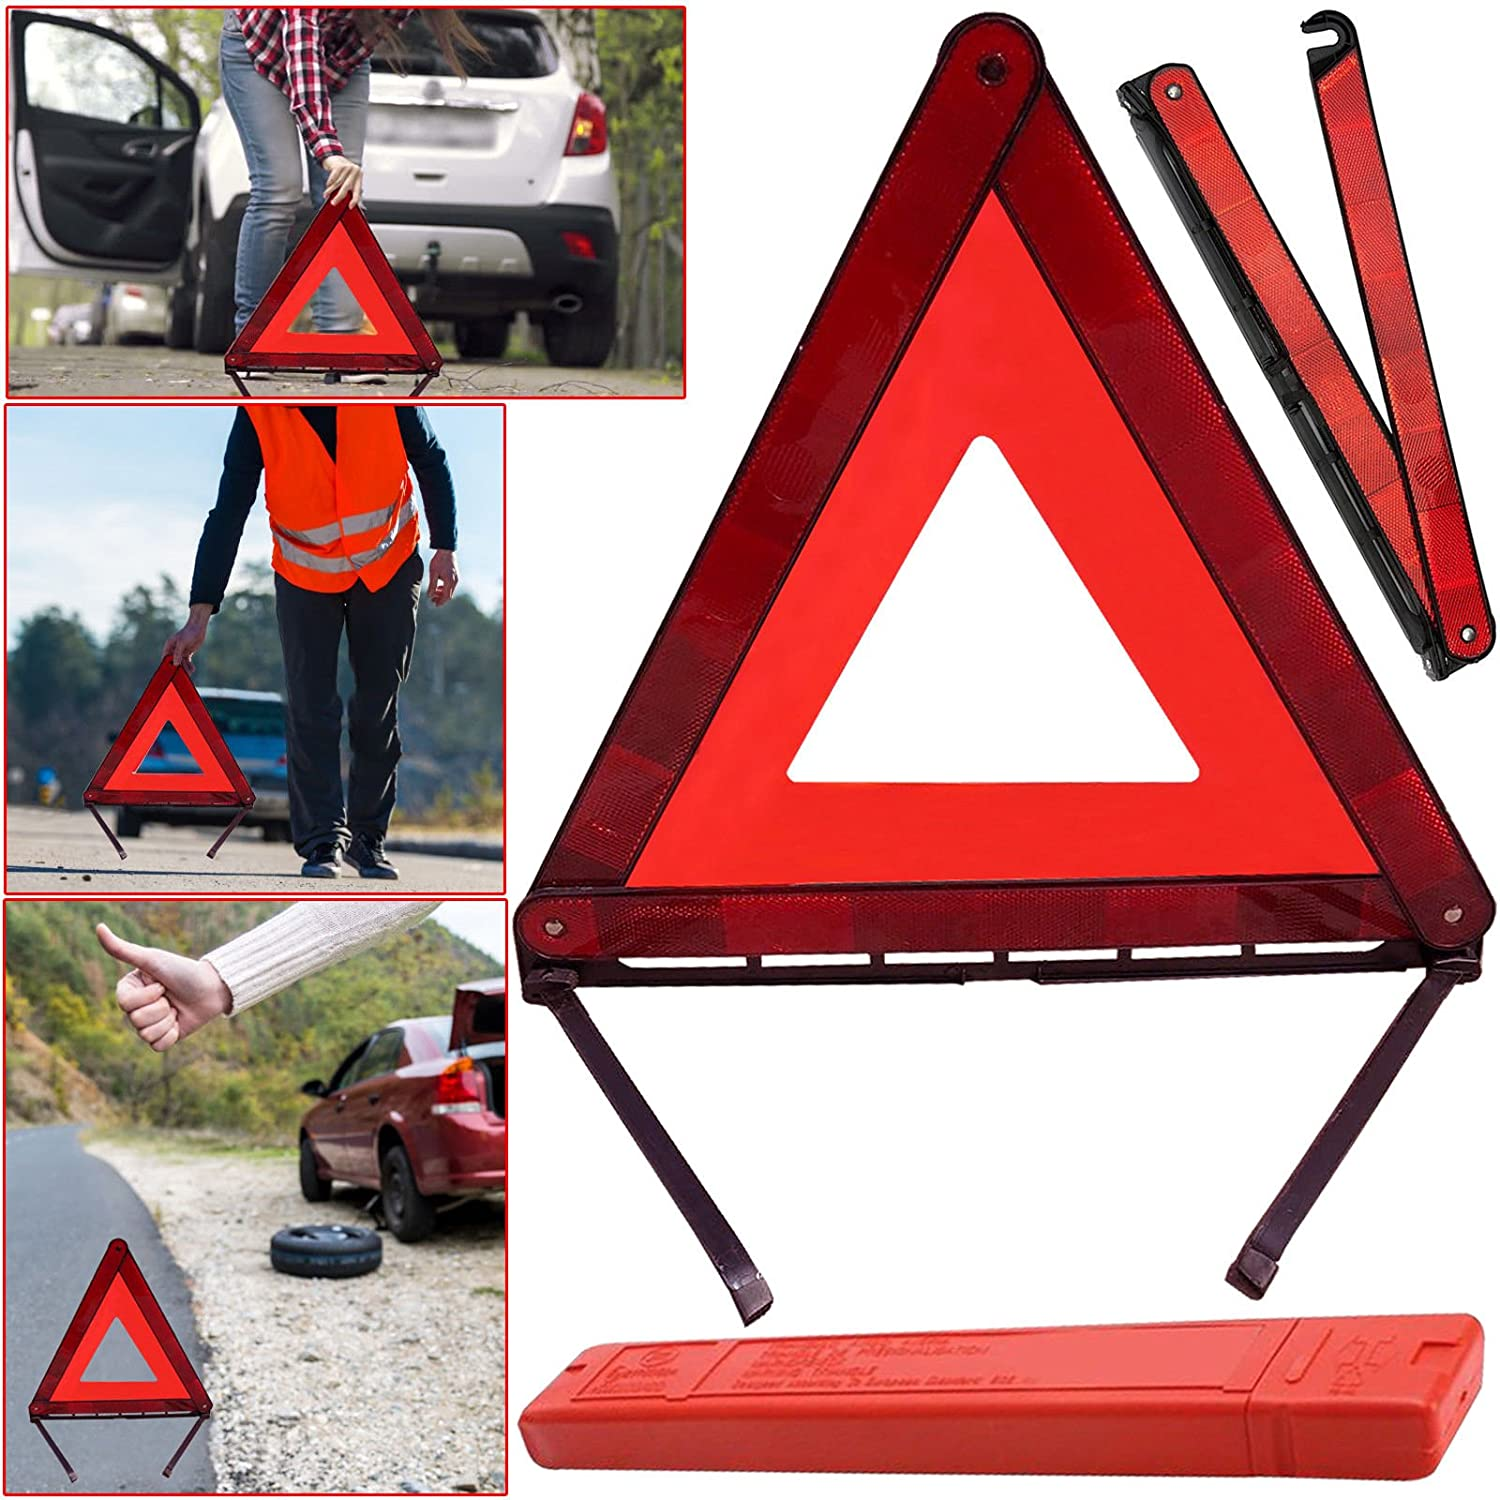 Safekom Sign pieghevole triangolo di sicurezza riflettente auto emergenza Hazard Breakdown UK/EU Safecom Hazard Sign designer